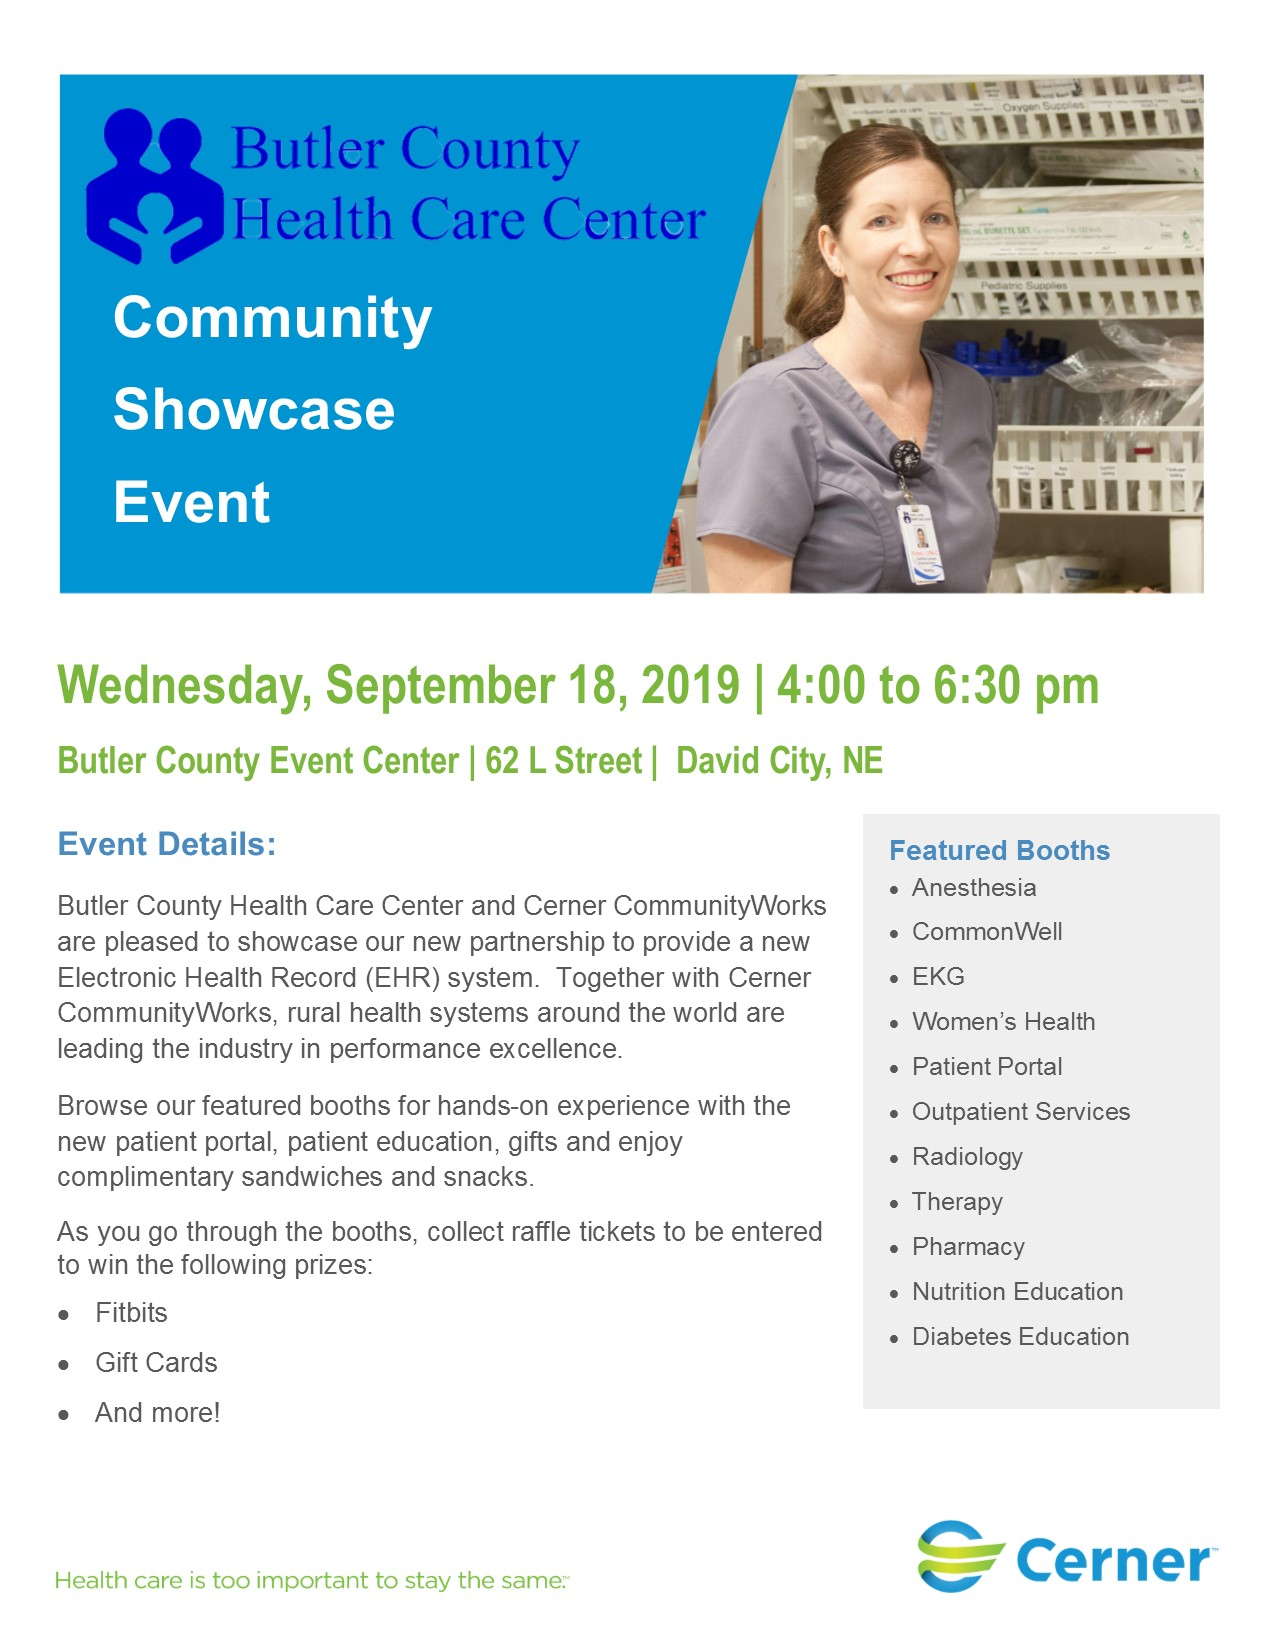 Butler County Health Care Center - Community Showcase Event